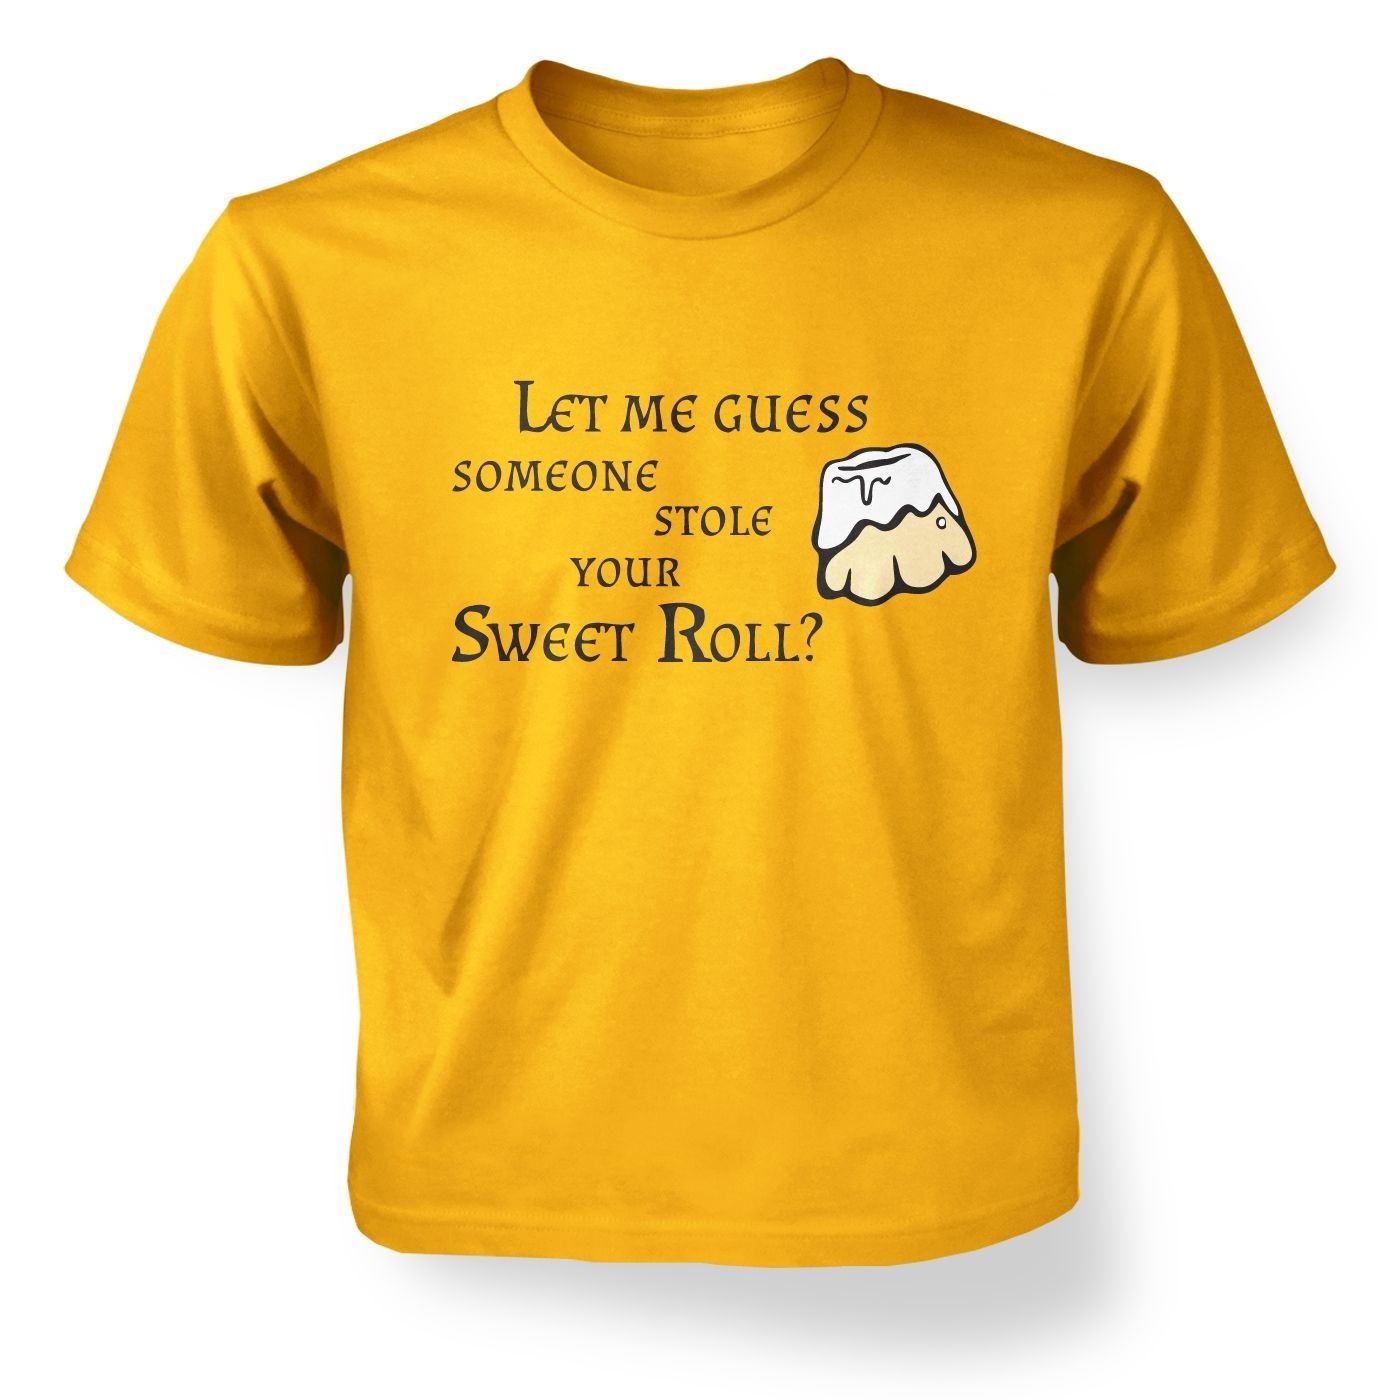 Someone Stole Your Sweetroll kids' t-shirt